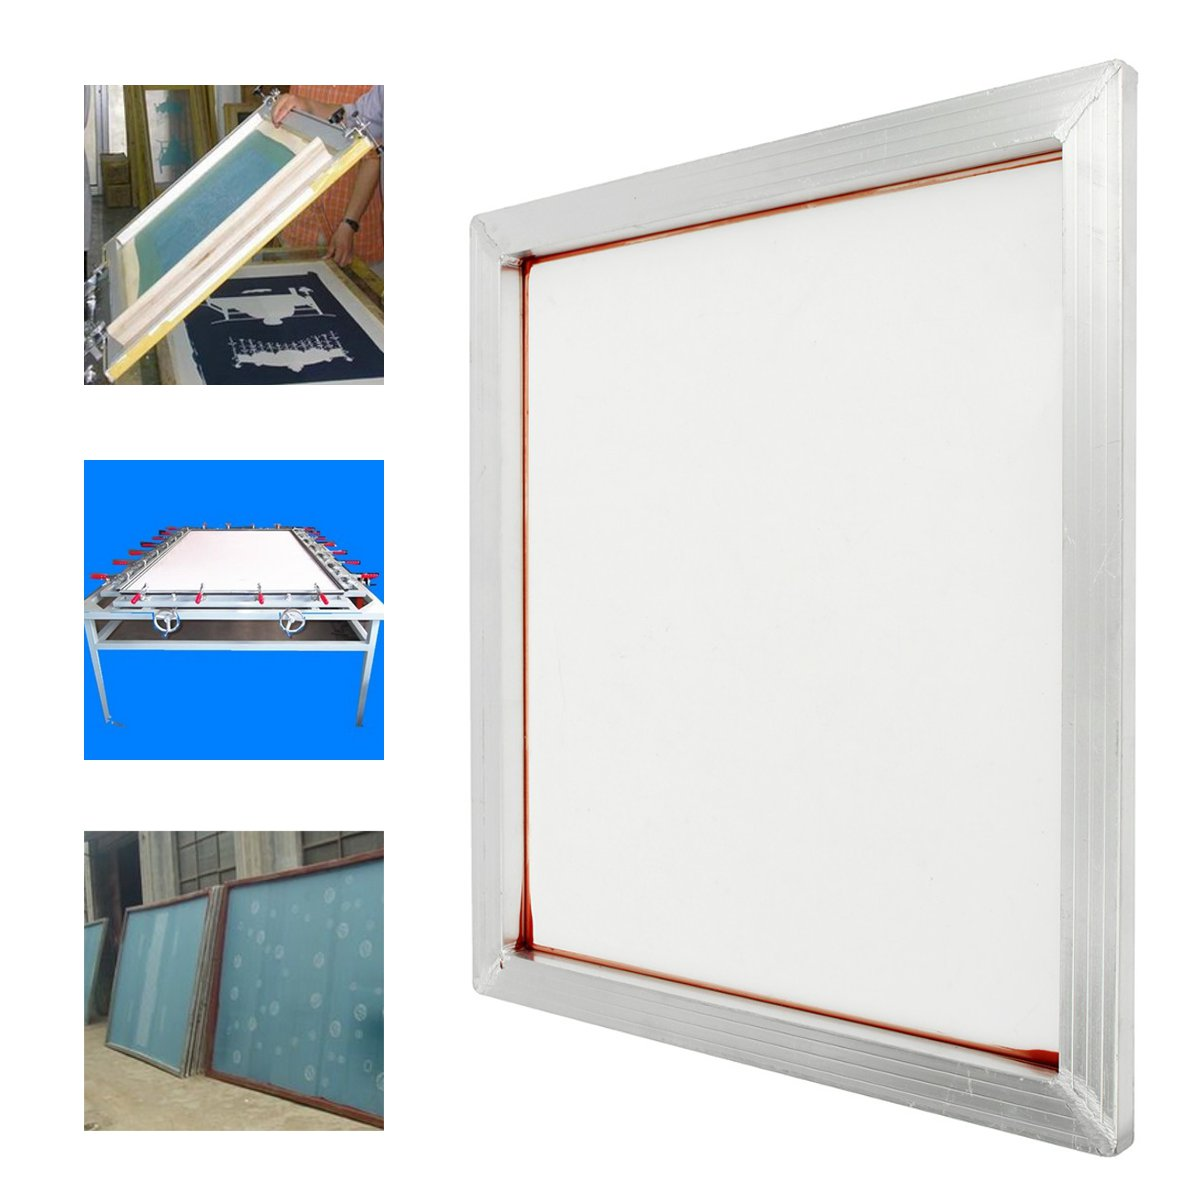 Screen Printing Aluminium Frame Stretched With 230 Yellow Mesh Count White Silk Print Polyester Mesh for Printed Circuit Boards